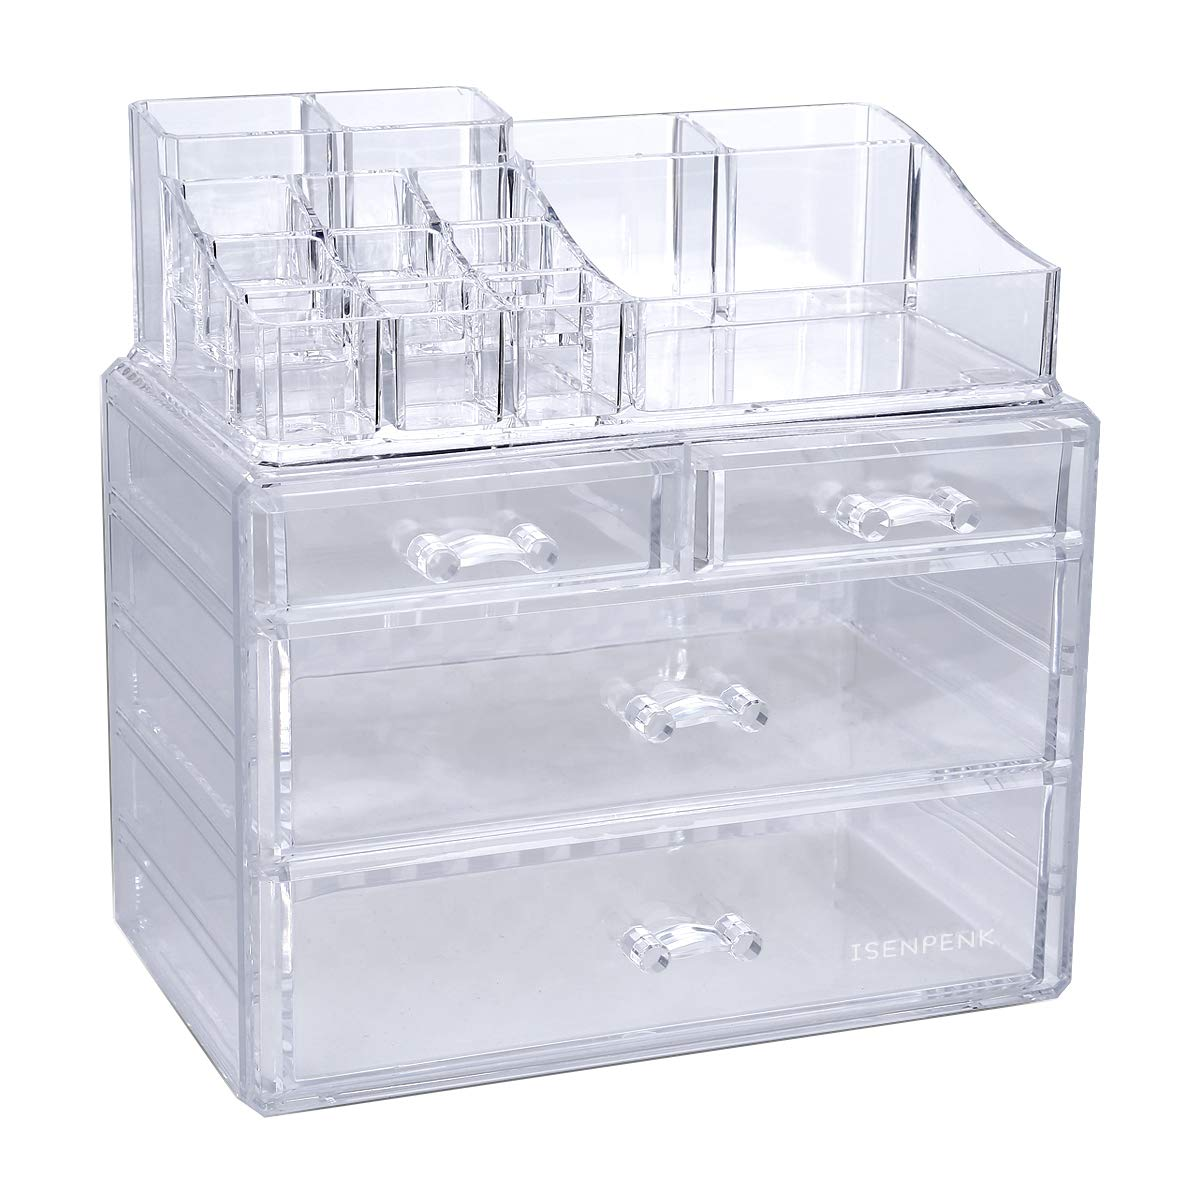 Makeup Storage Organiser, ISENPENK Clear Crystal Acrylic Cosmetic With 4 Drawers, 2 Separated Piece Set, Makeup Accessories/Jewellery/Nail Polish/Earrings Large Capacity Organiser Case Display, Gifts